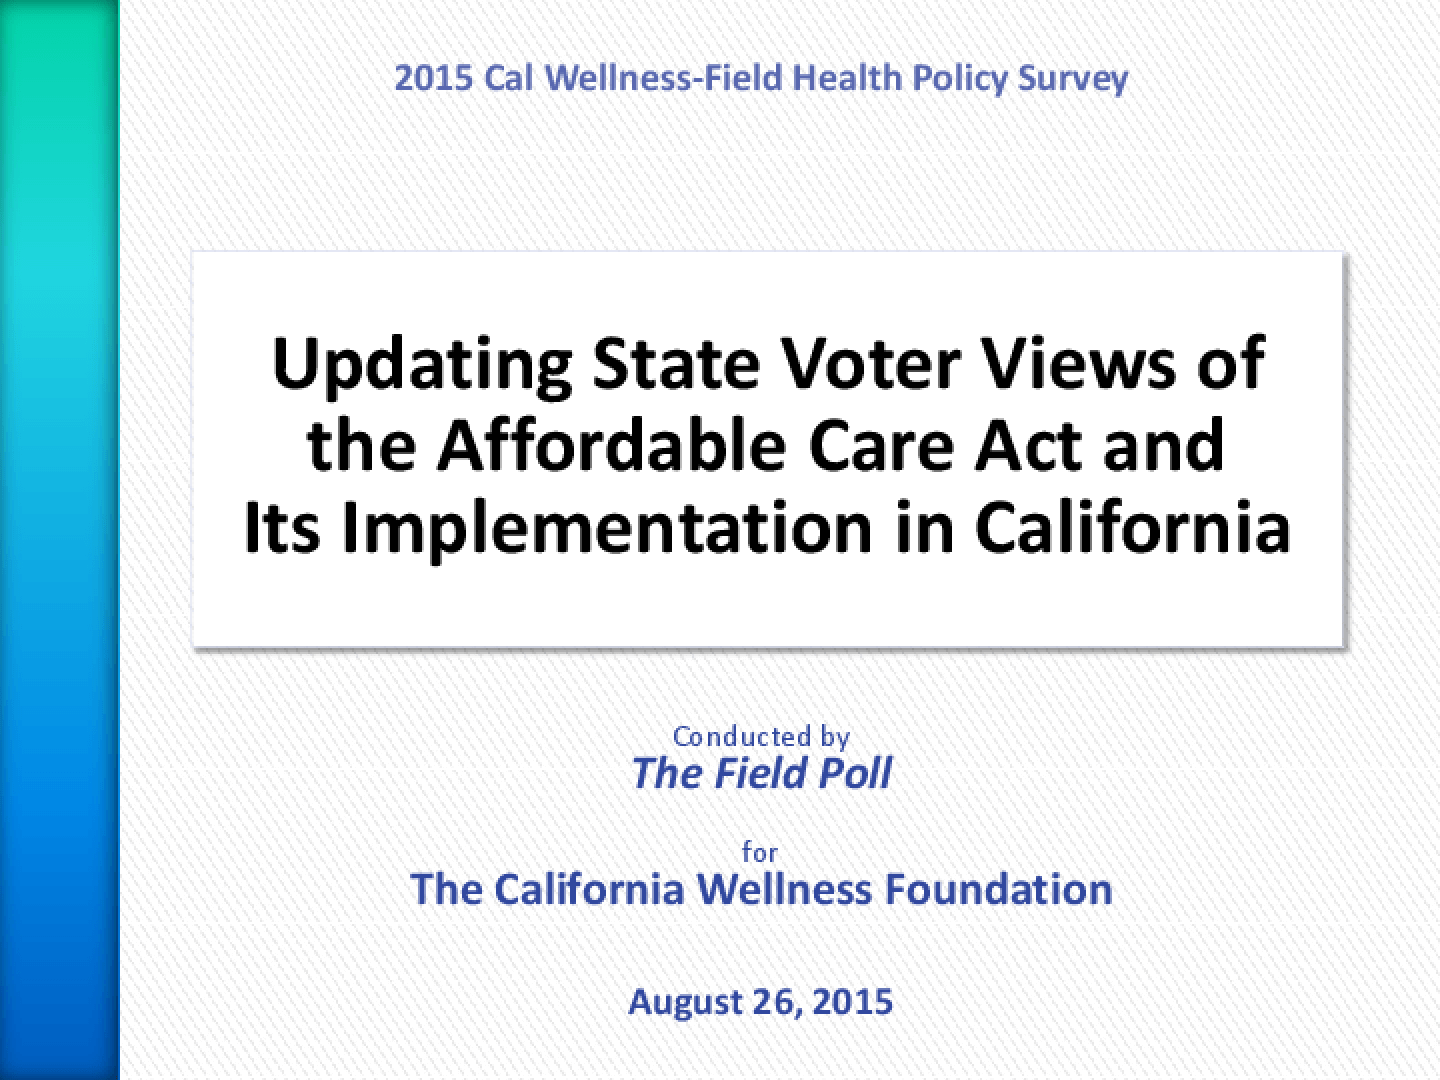 2015 Cal Wellness-Field Health Policy Survey: Updating State Voter Views of the Affordable Care Act and It's Implementation in California